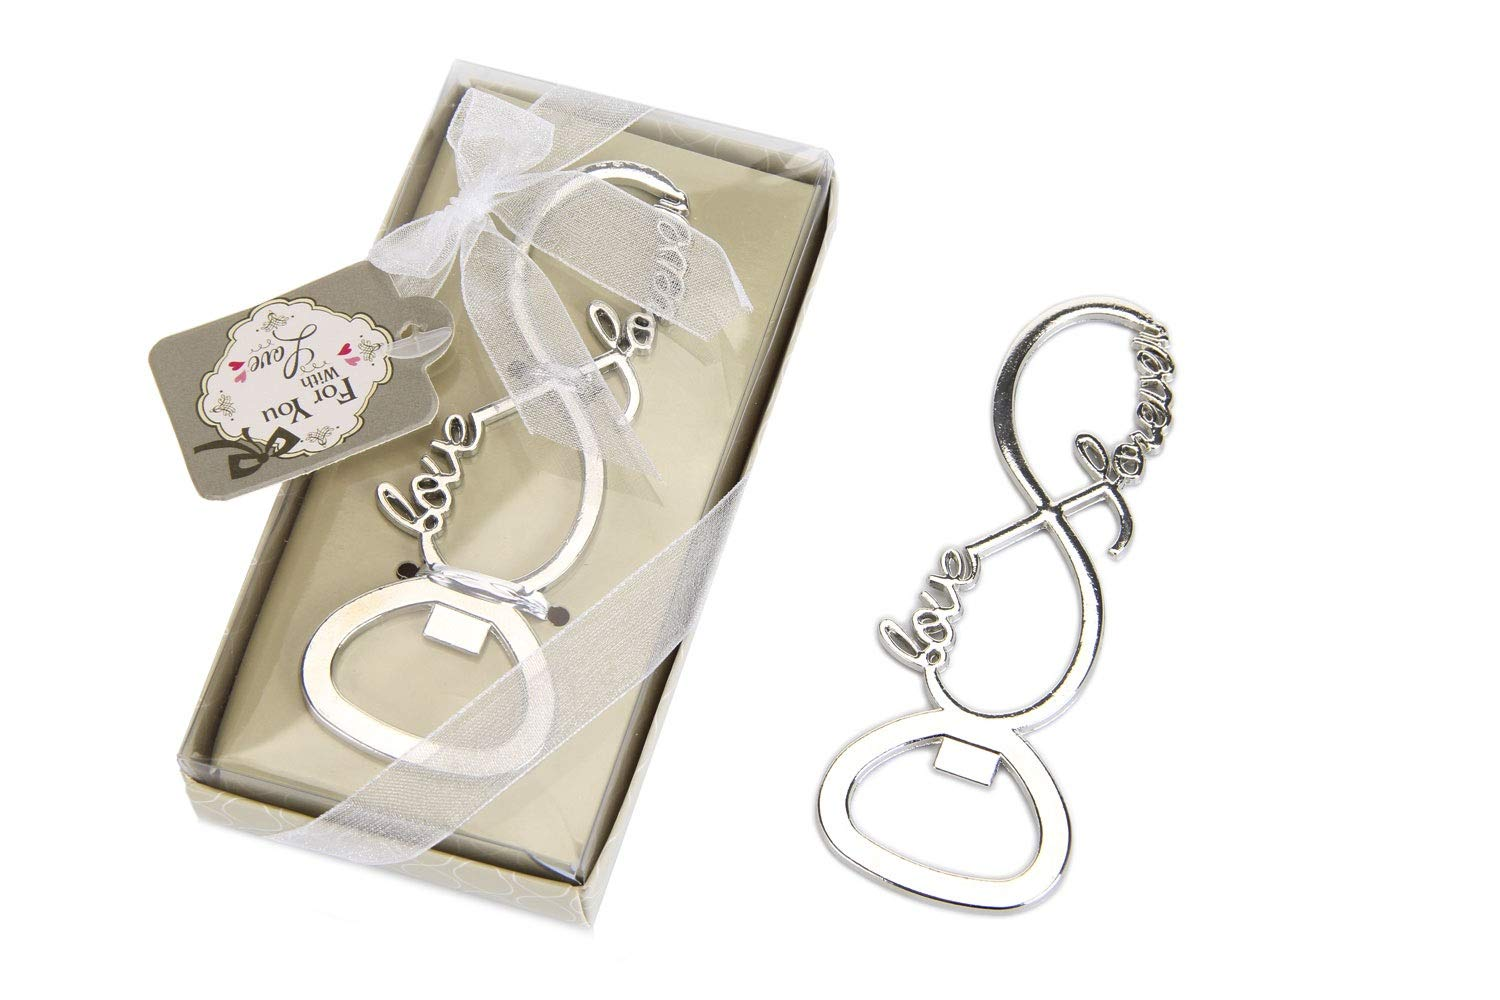 30 pcs Silver Tone Bottle Openers Wedding Favors Decorations, Gift Box, Bow Knot Love Shaped, Party Supplies